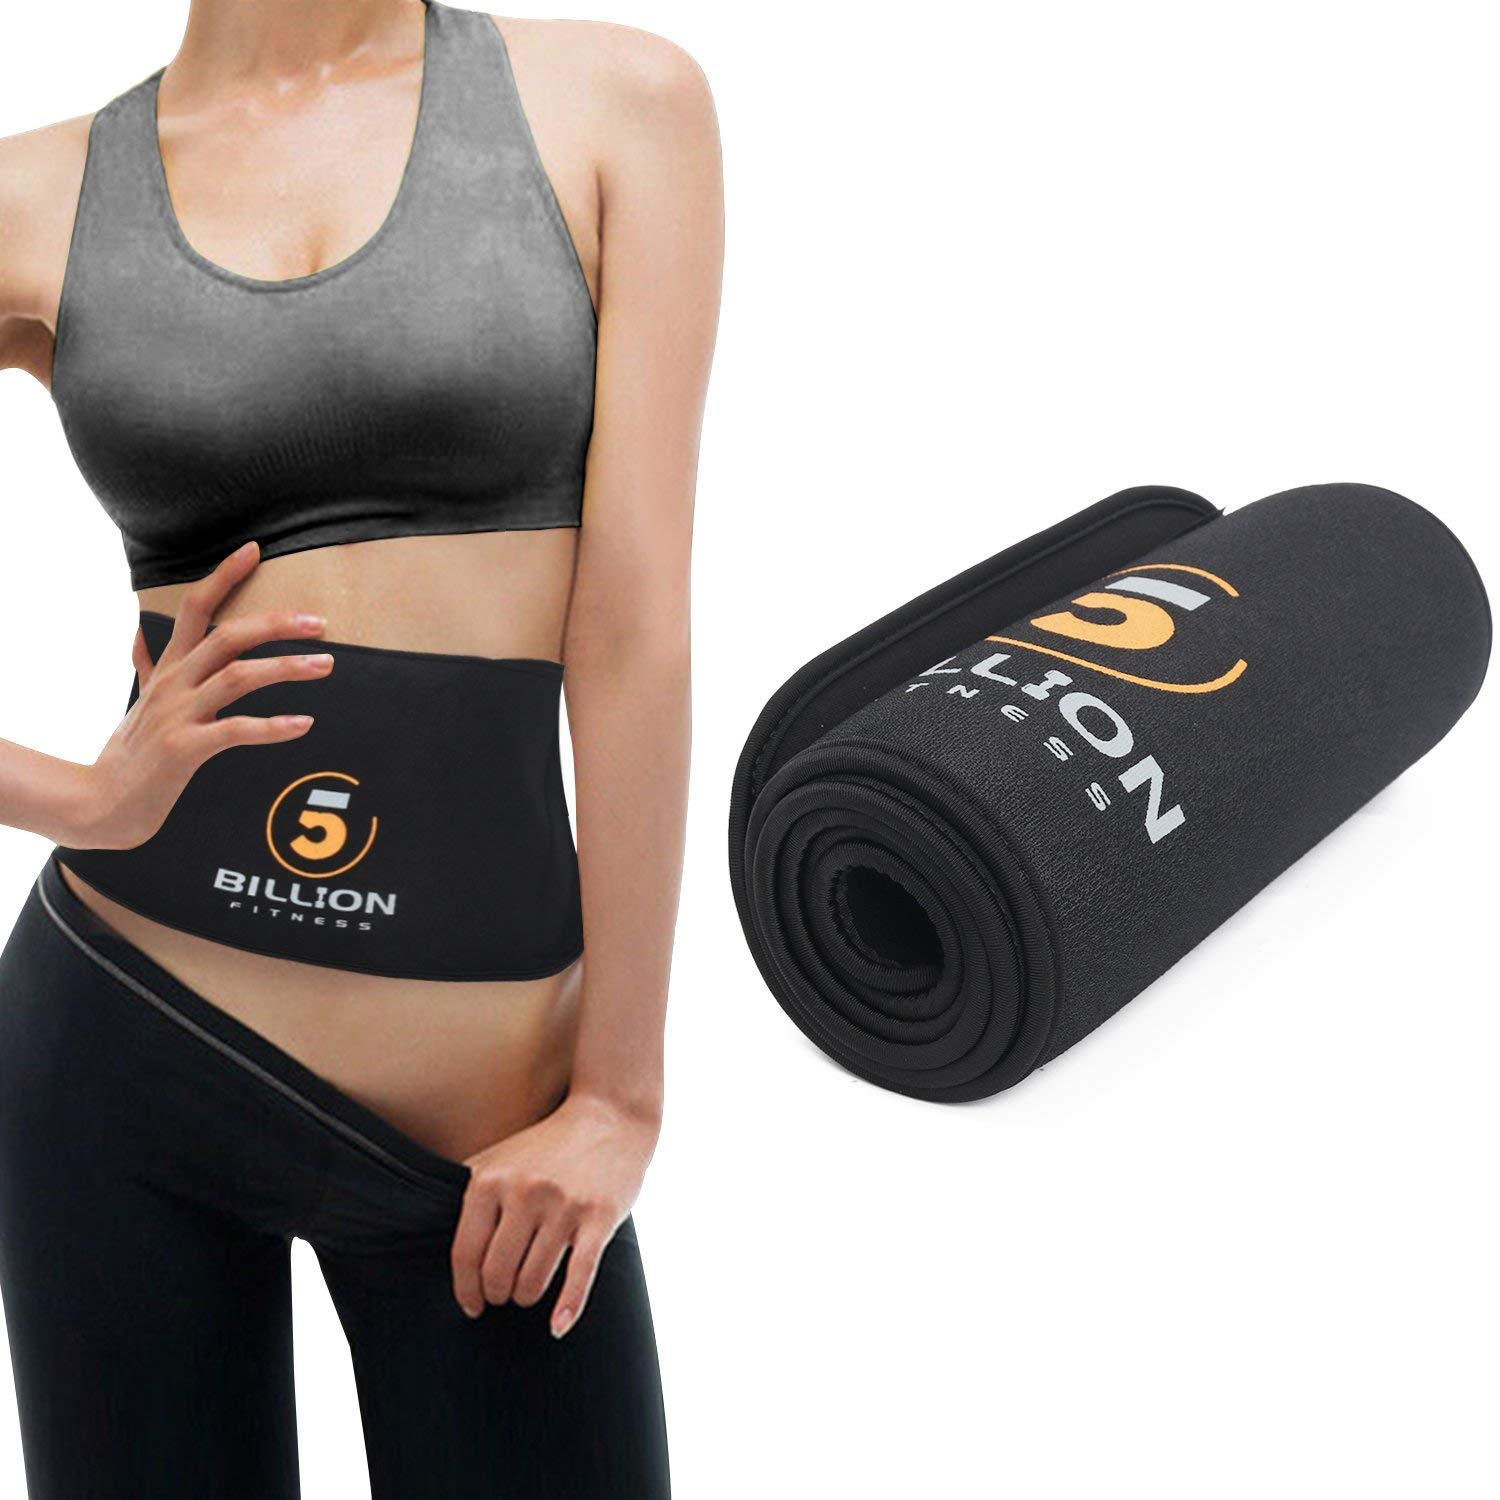 5BILLION Sports Waist Trimmer Sweet Sweat Waist Trimmer Adjustable Sweat Belt Back Support Belt Weight Loss Belt for Men & Women